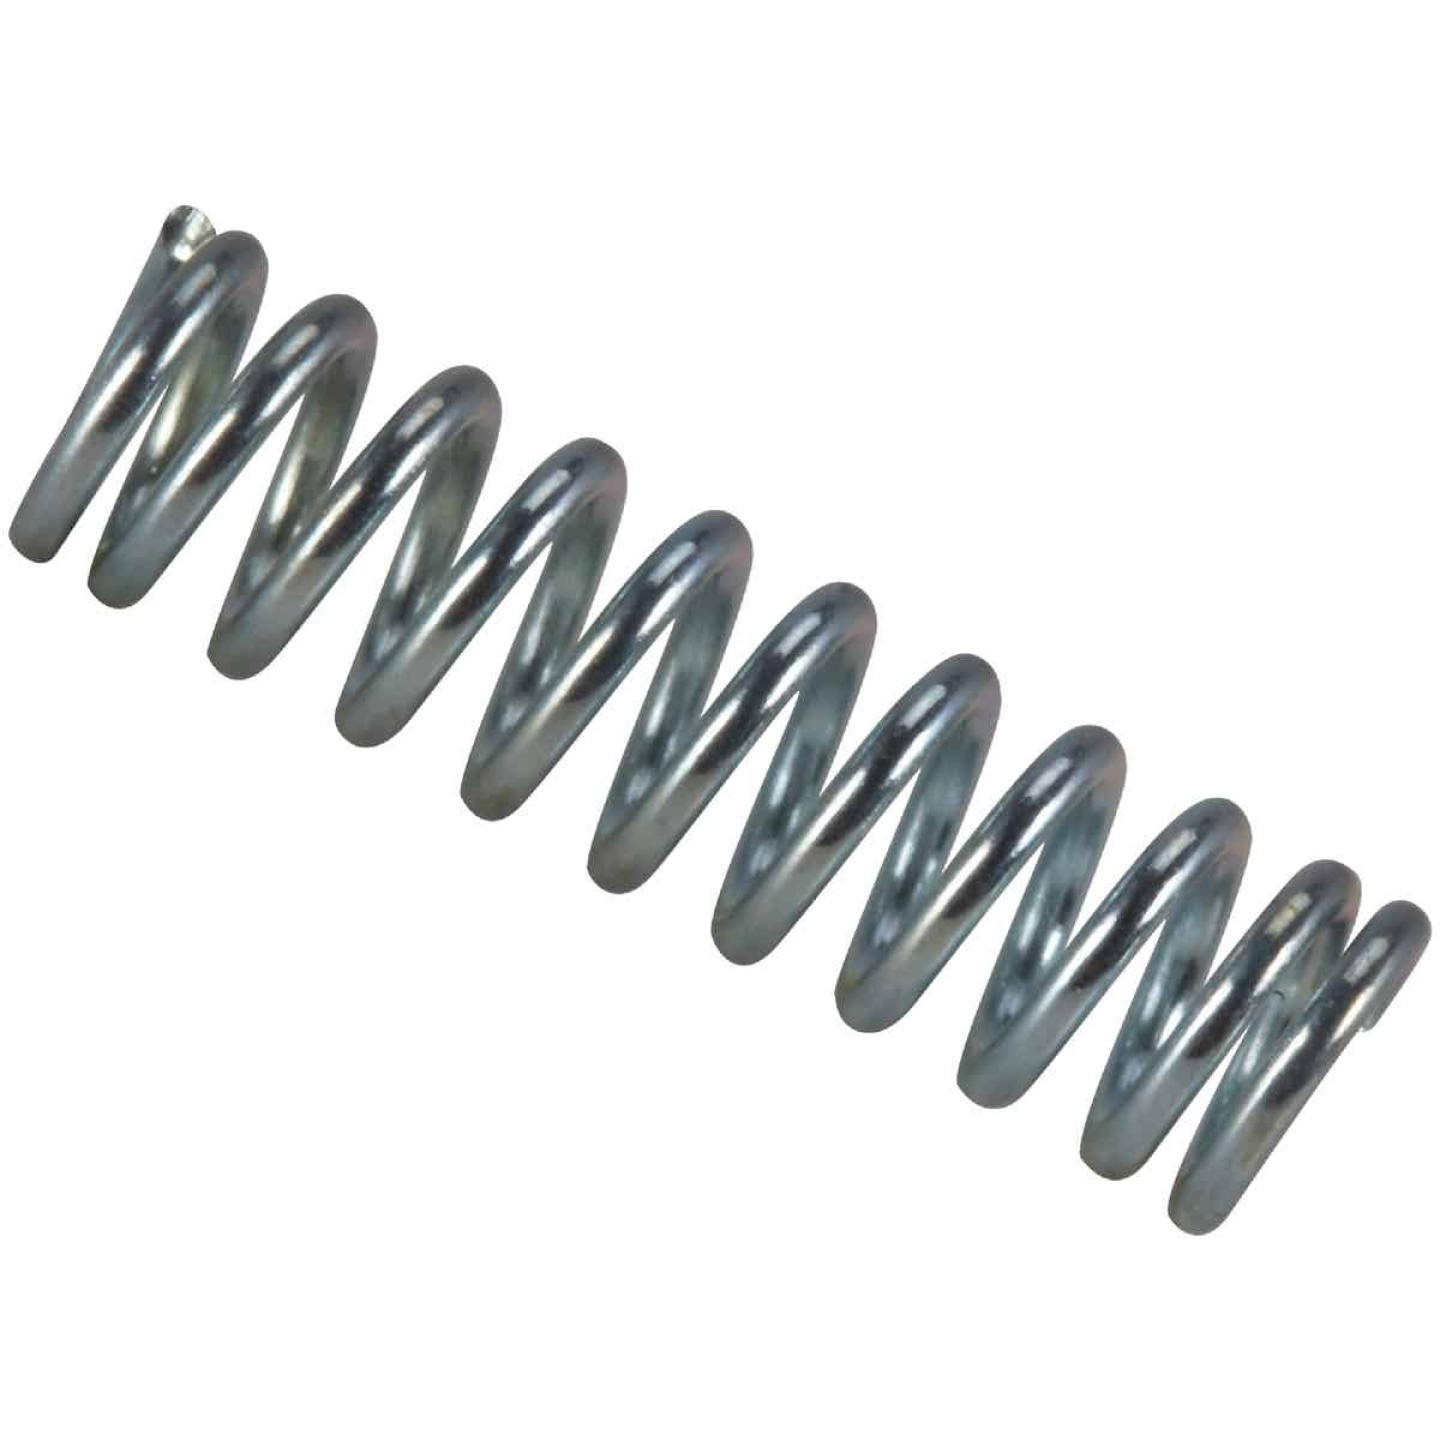 Century Spring 1-1/2 In. x 11/32 In. Compression Spring (4 Count) Image 1